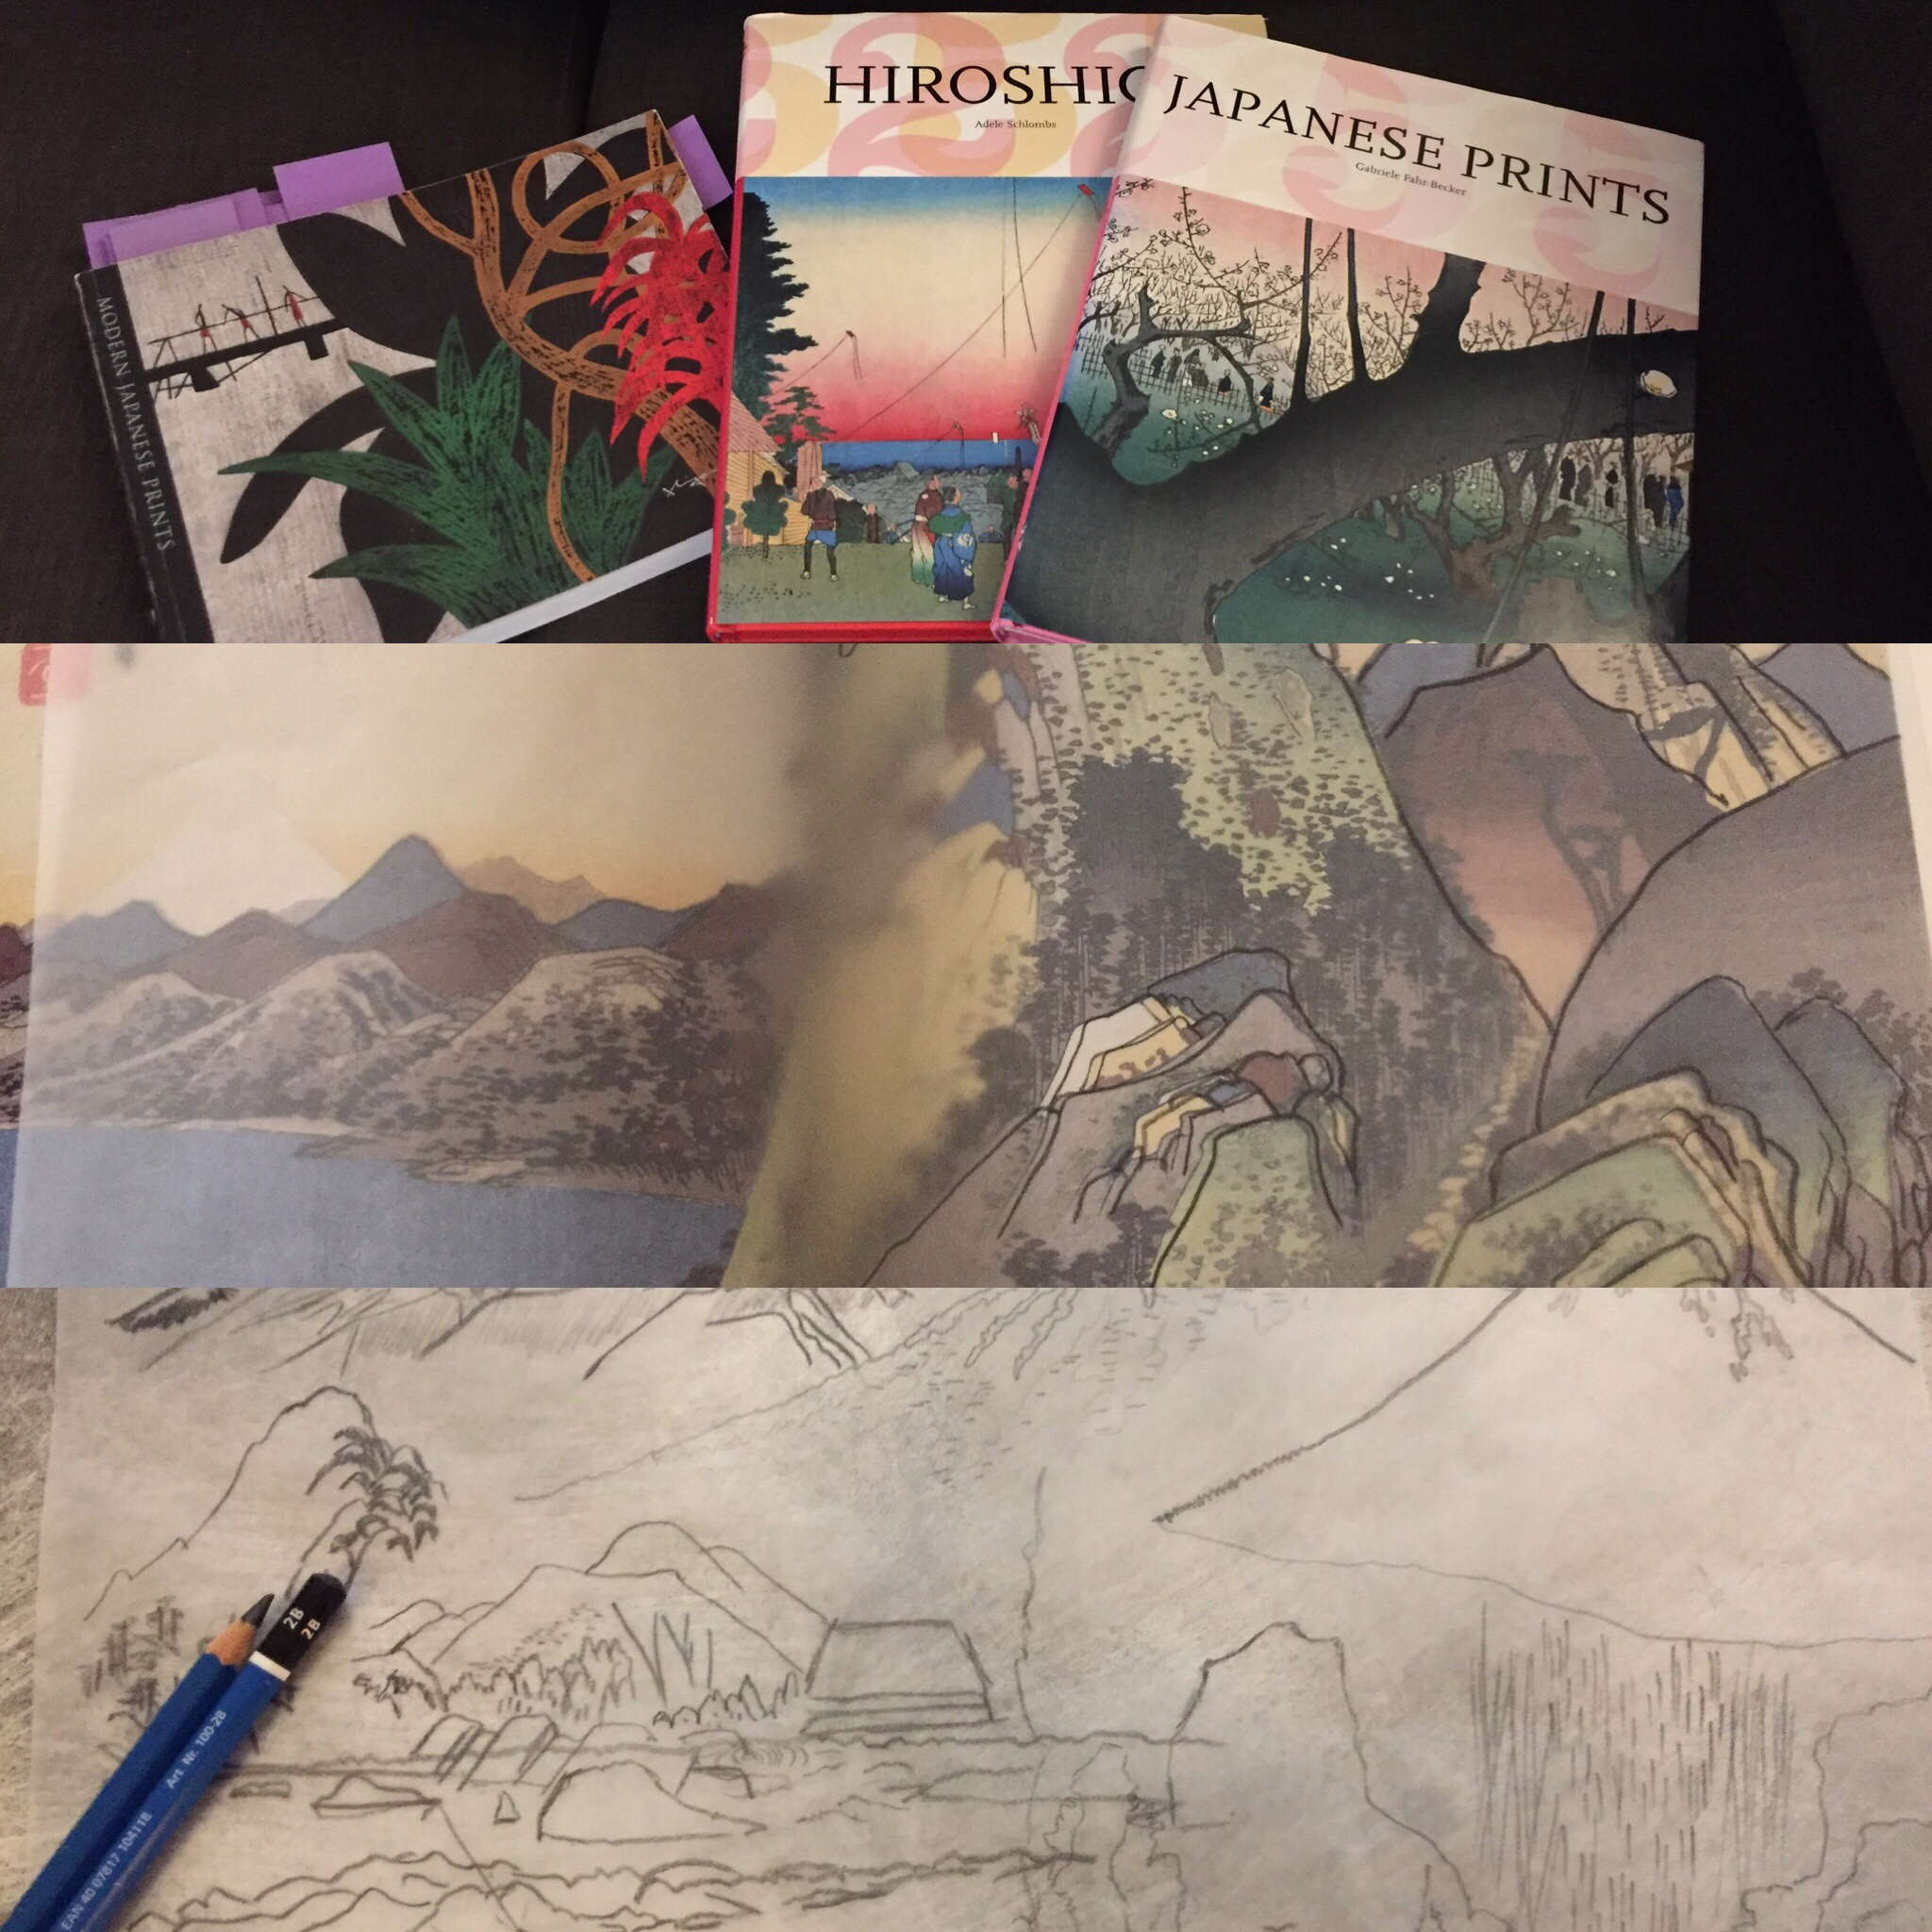 June 30/19 - Research for mountain collages with Japanese inspiration